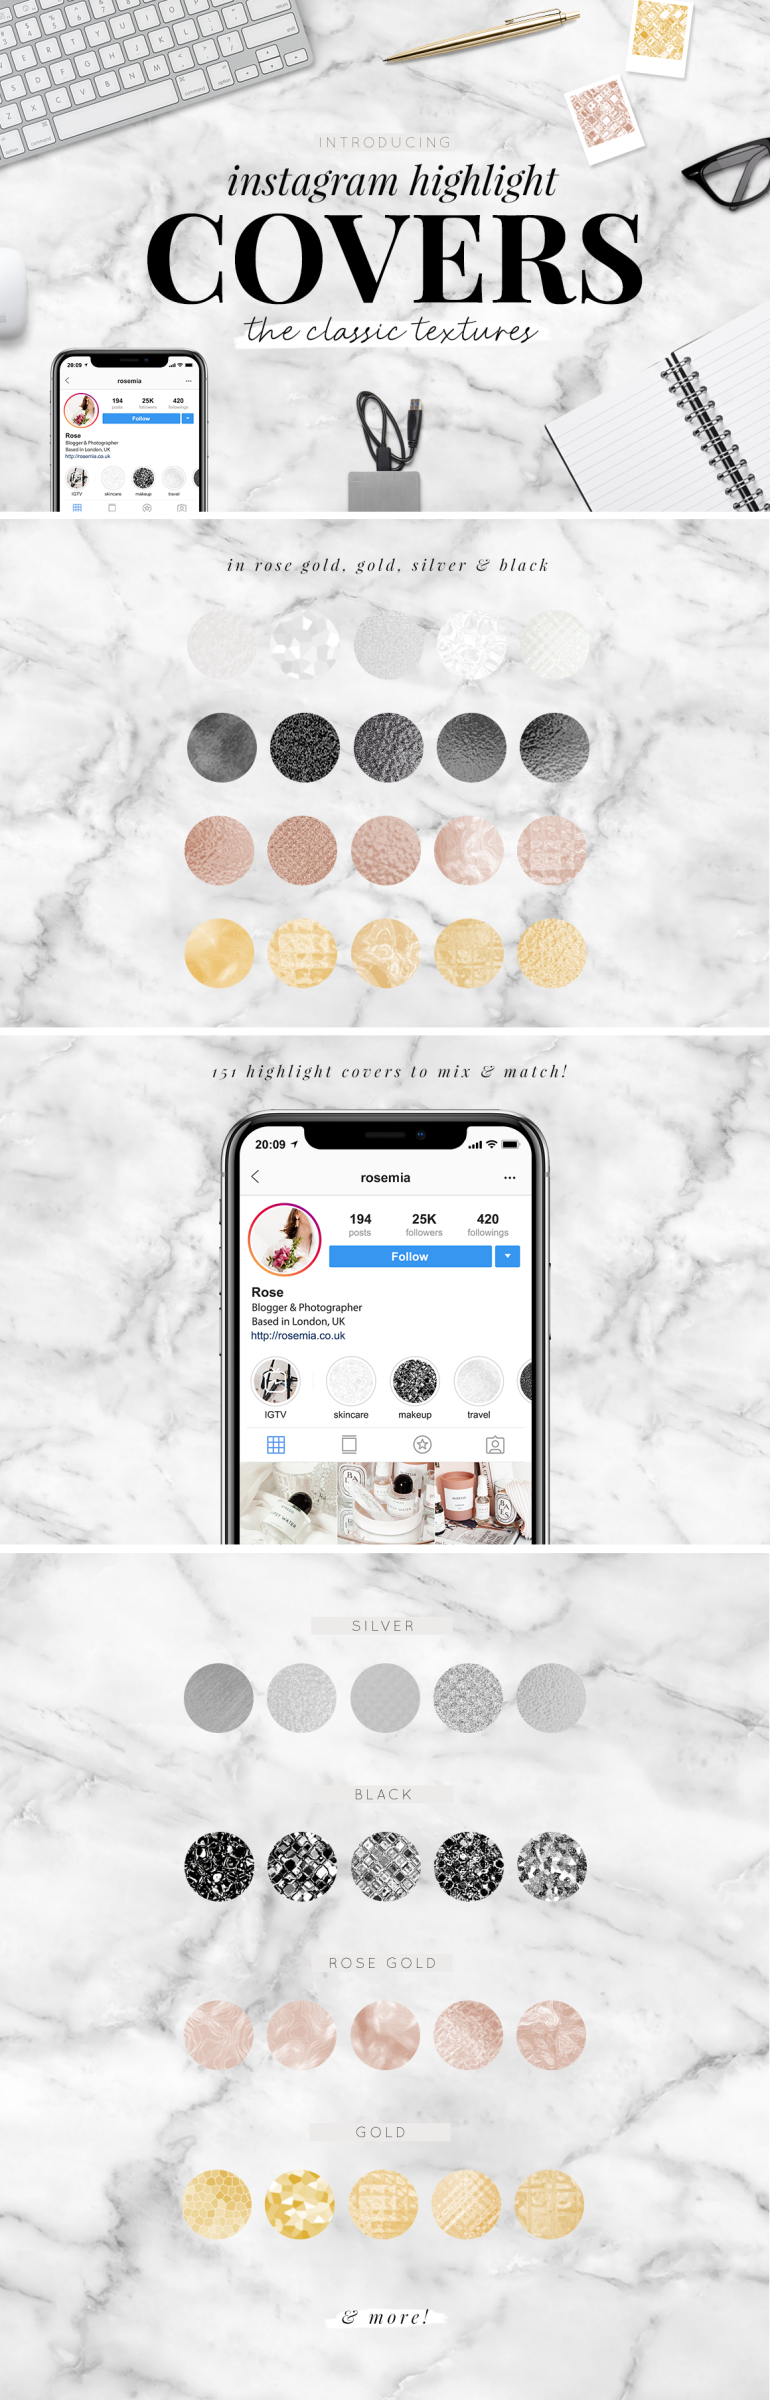 instagram highlight covers - the classic textures - new lune studio